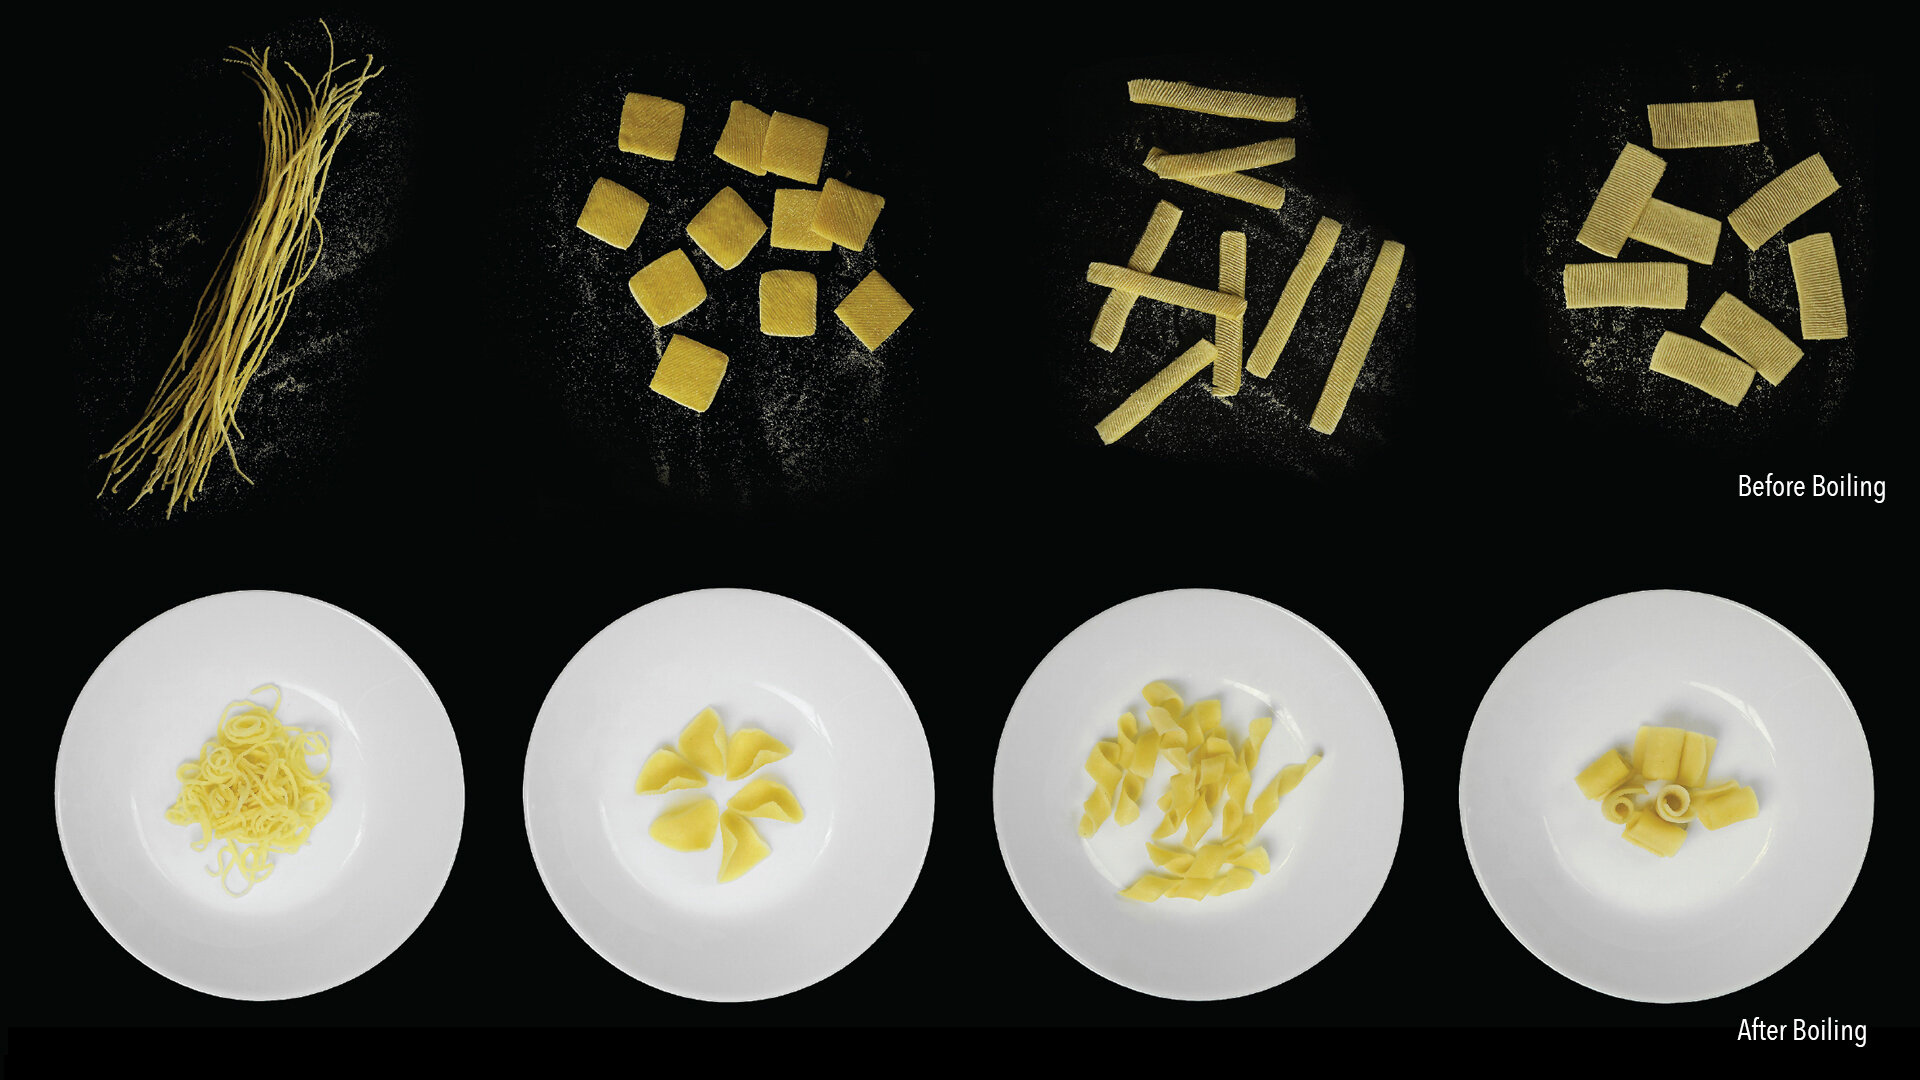 Shapeshifting pasta could bring transformative change to plastic use